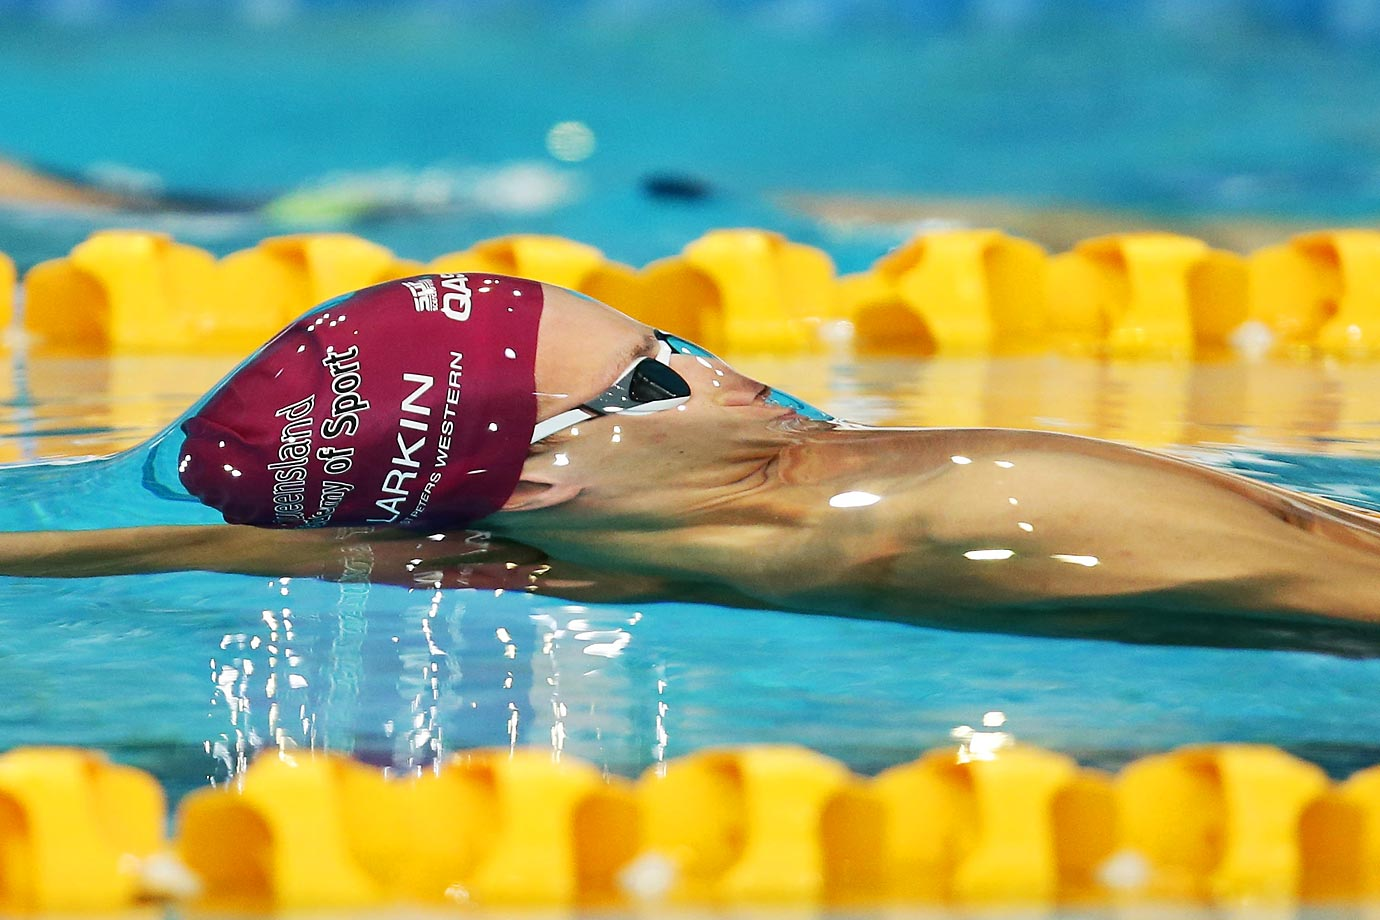 Mitch Larkin forms a bubble during the 100-meter backstroke at the Australian National Swimming Championships.